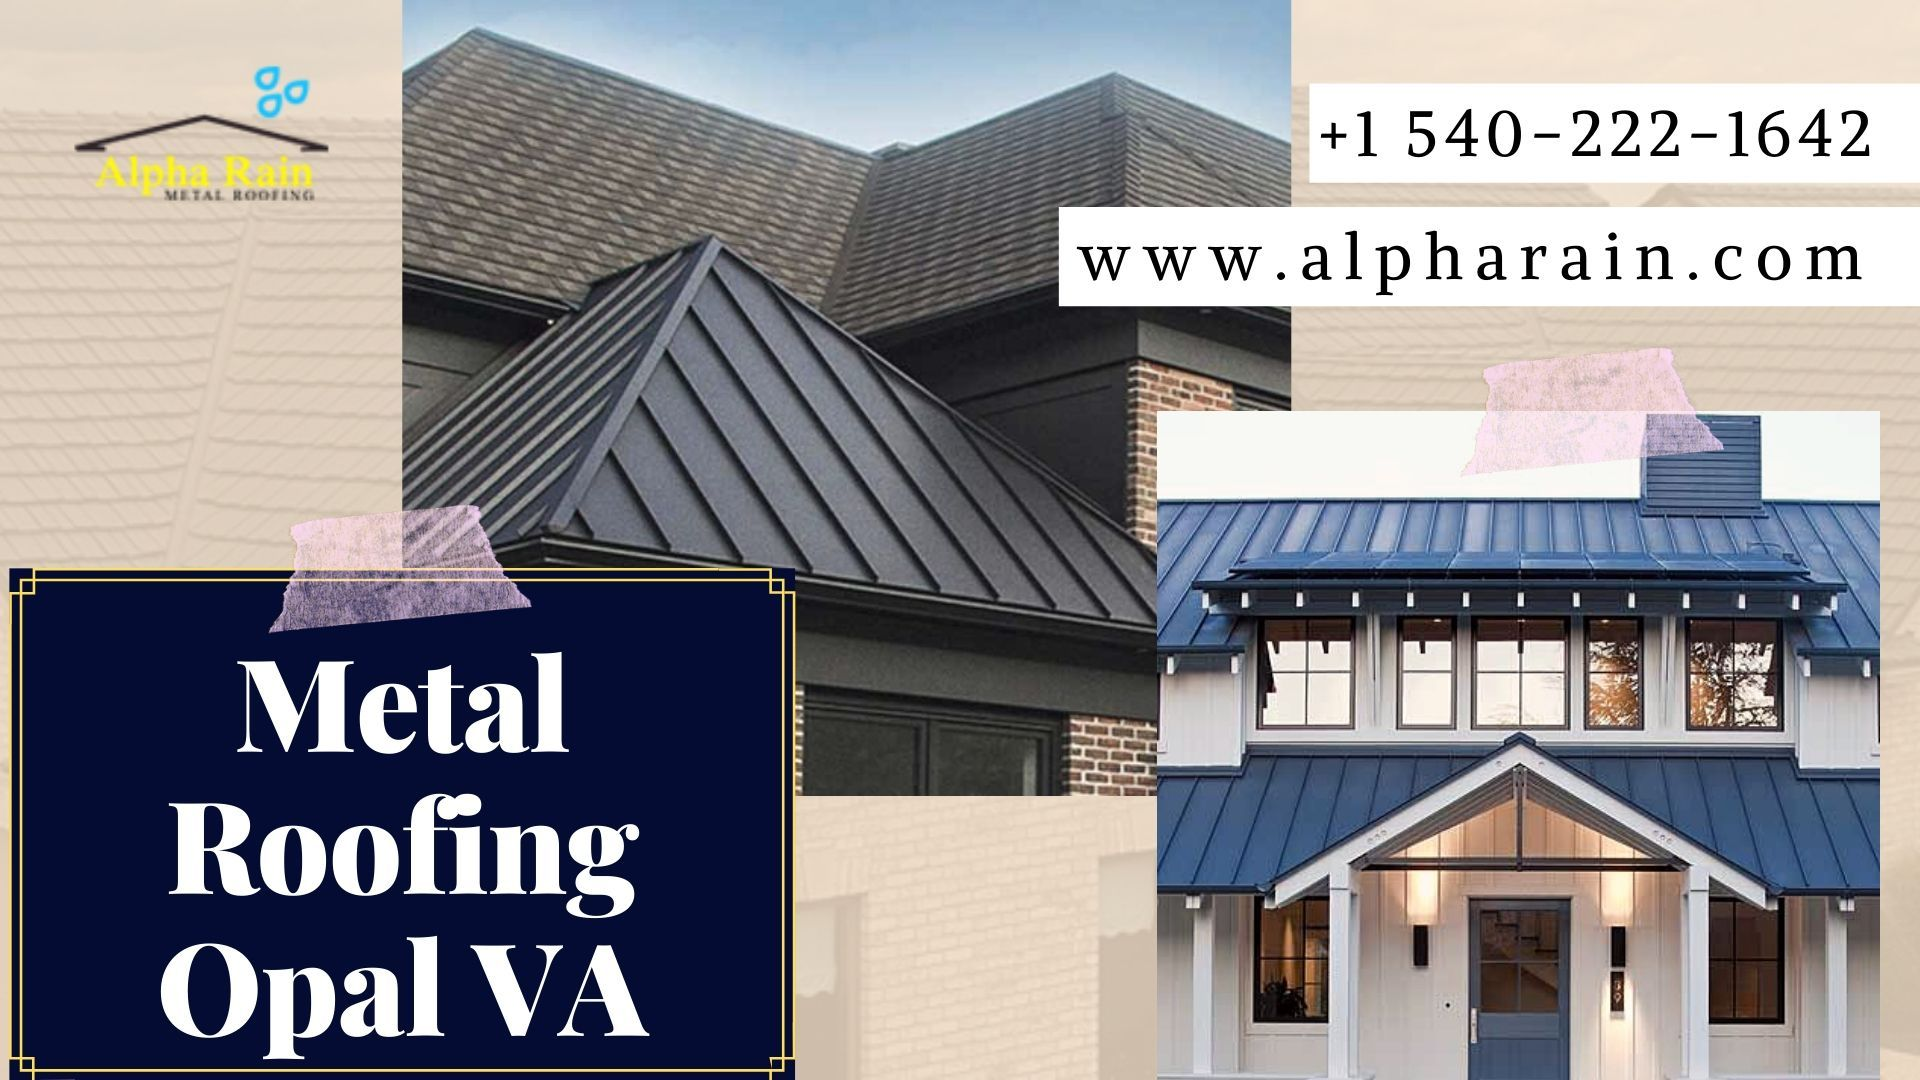 Can You Save 10 50 In Cooling Costs By Metal Roofing In Opal Va Metal Roof Roofing Metal Shingle Roof